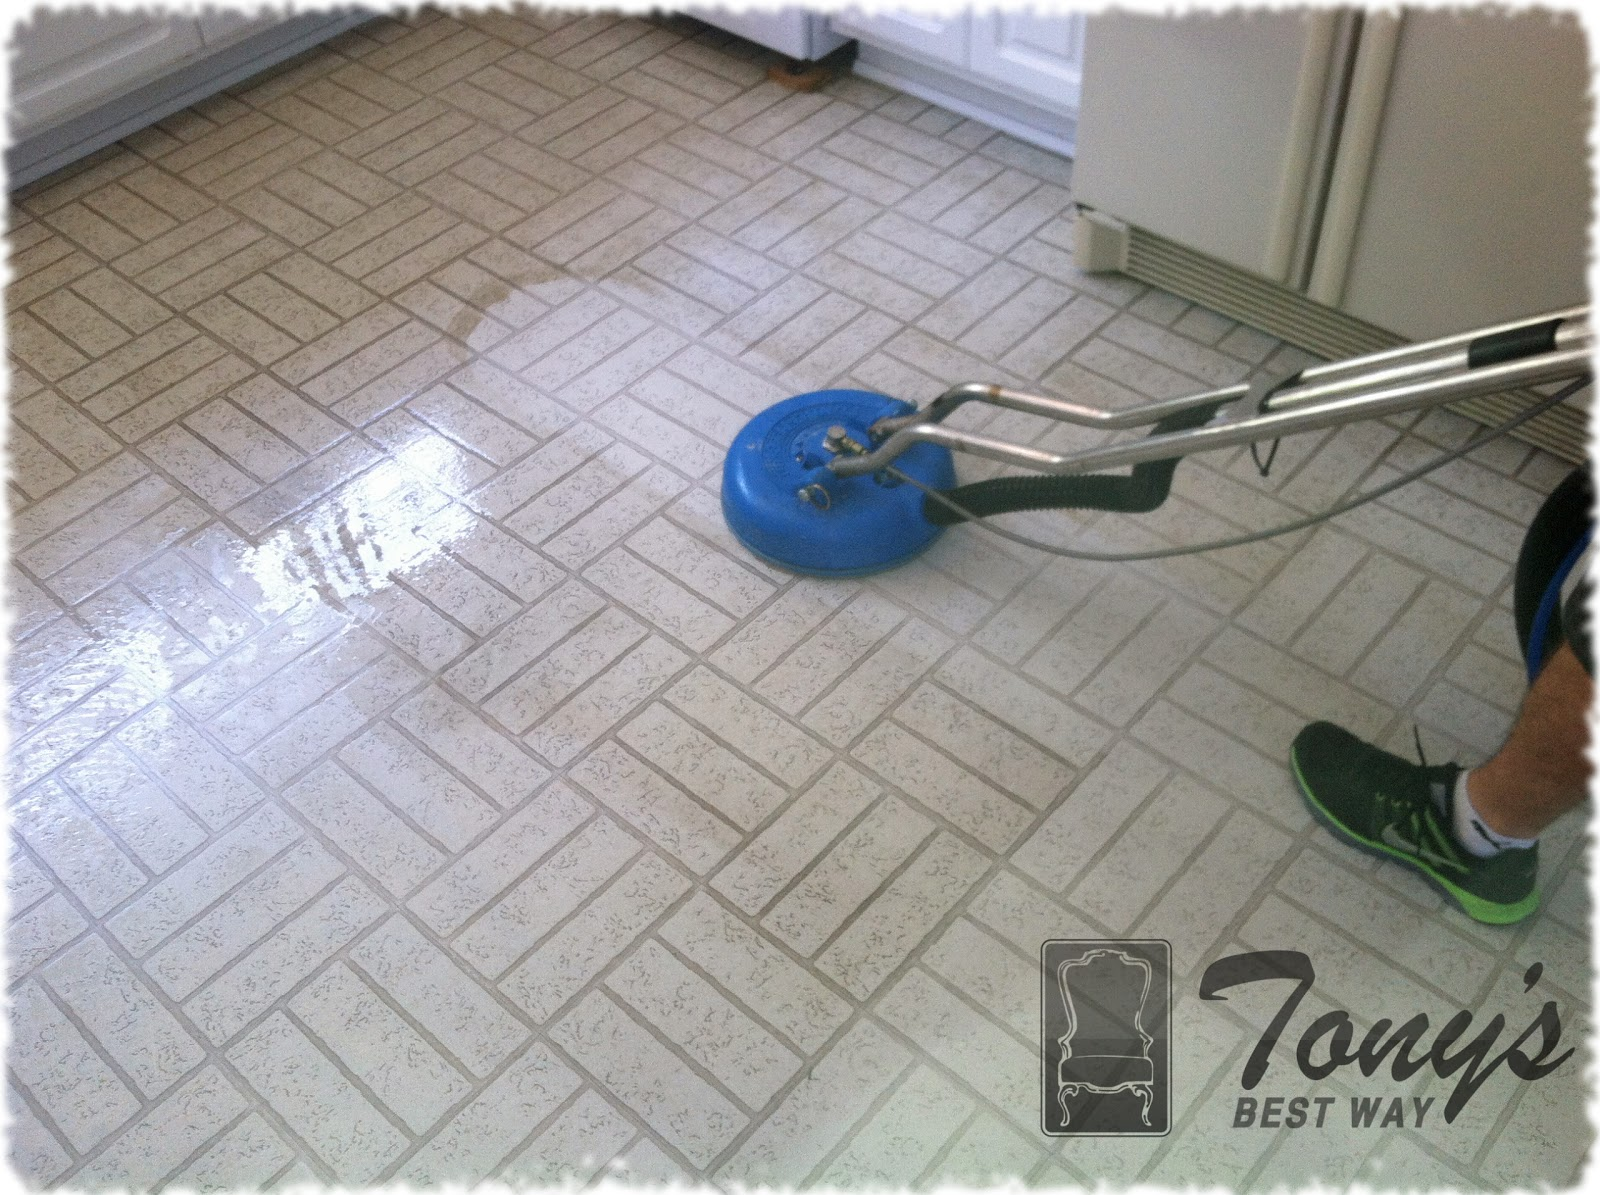 Our Great Hard Floor Cleaning Equipment Cleans Up As It Works; No Spray!